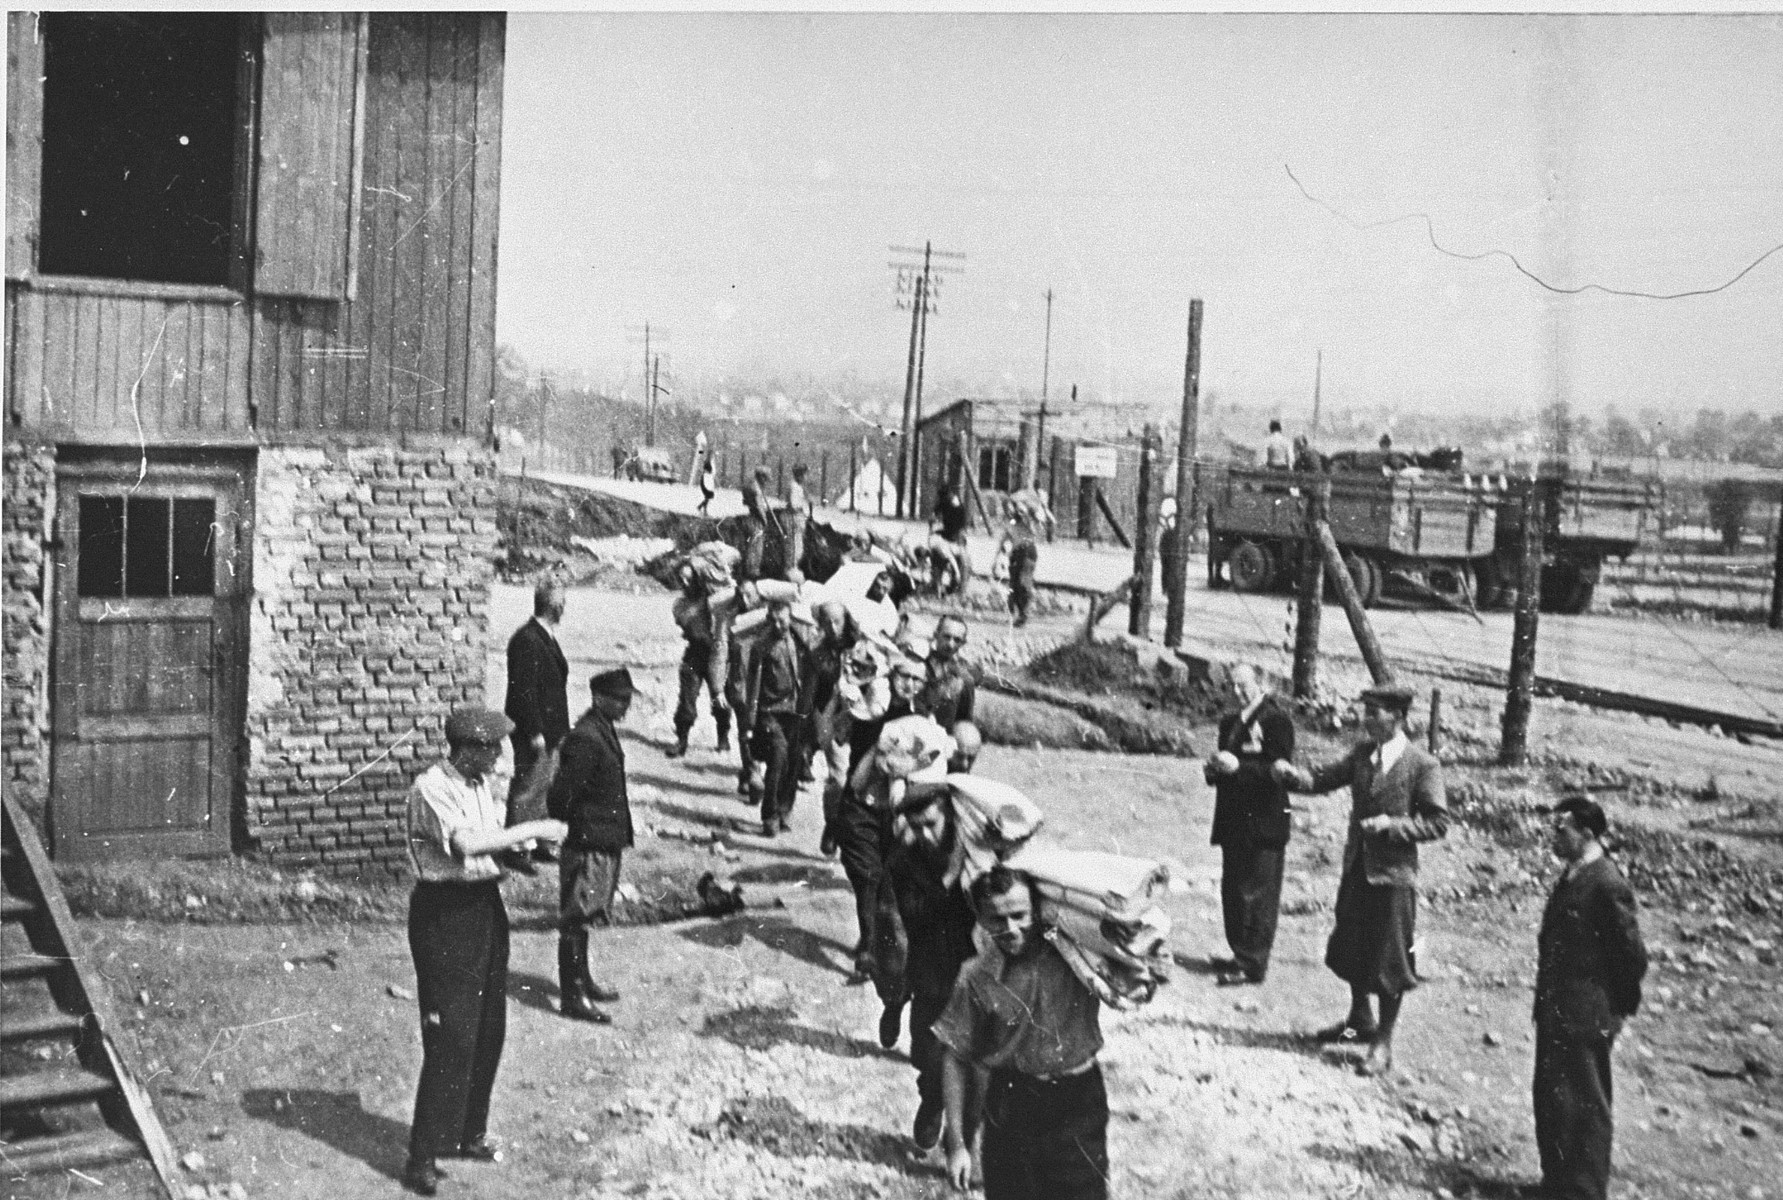 Jewish prisoners carry bolts of cloth to the Madritch factory in Plaszow.  The Madritch factory utilized concentration camp labor to produce uniforms for the German army.